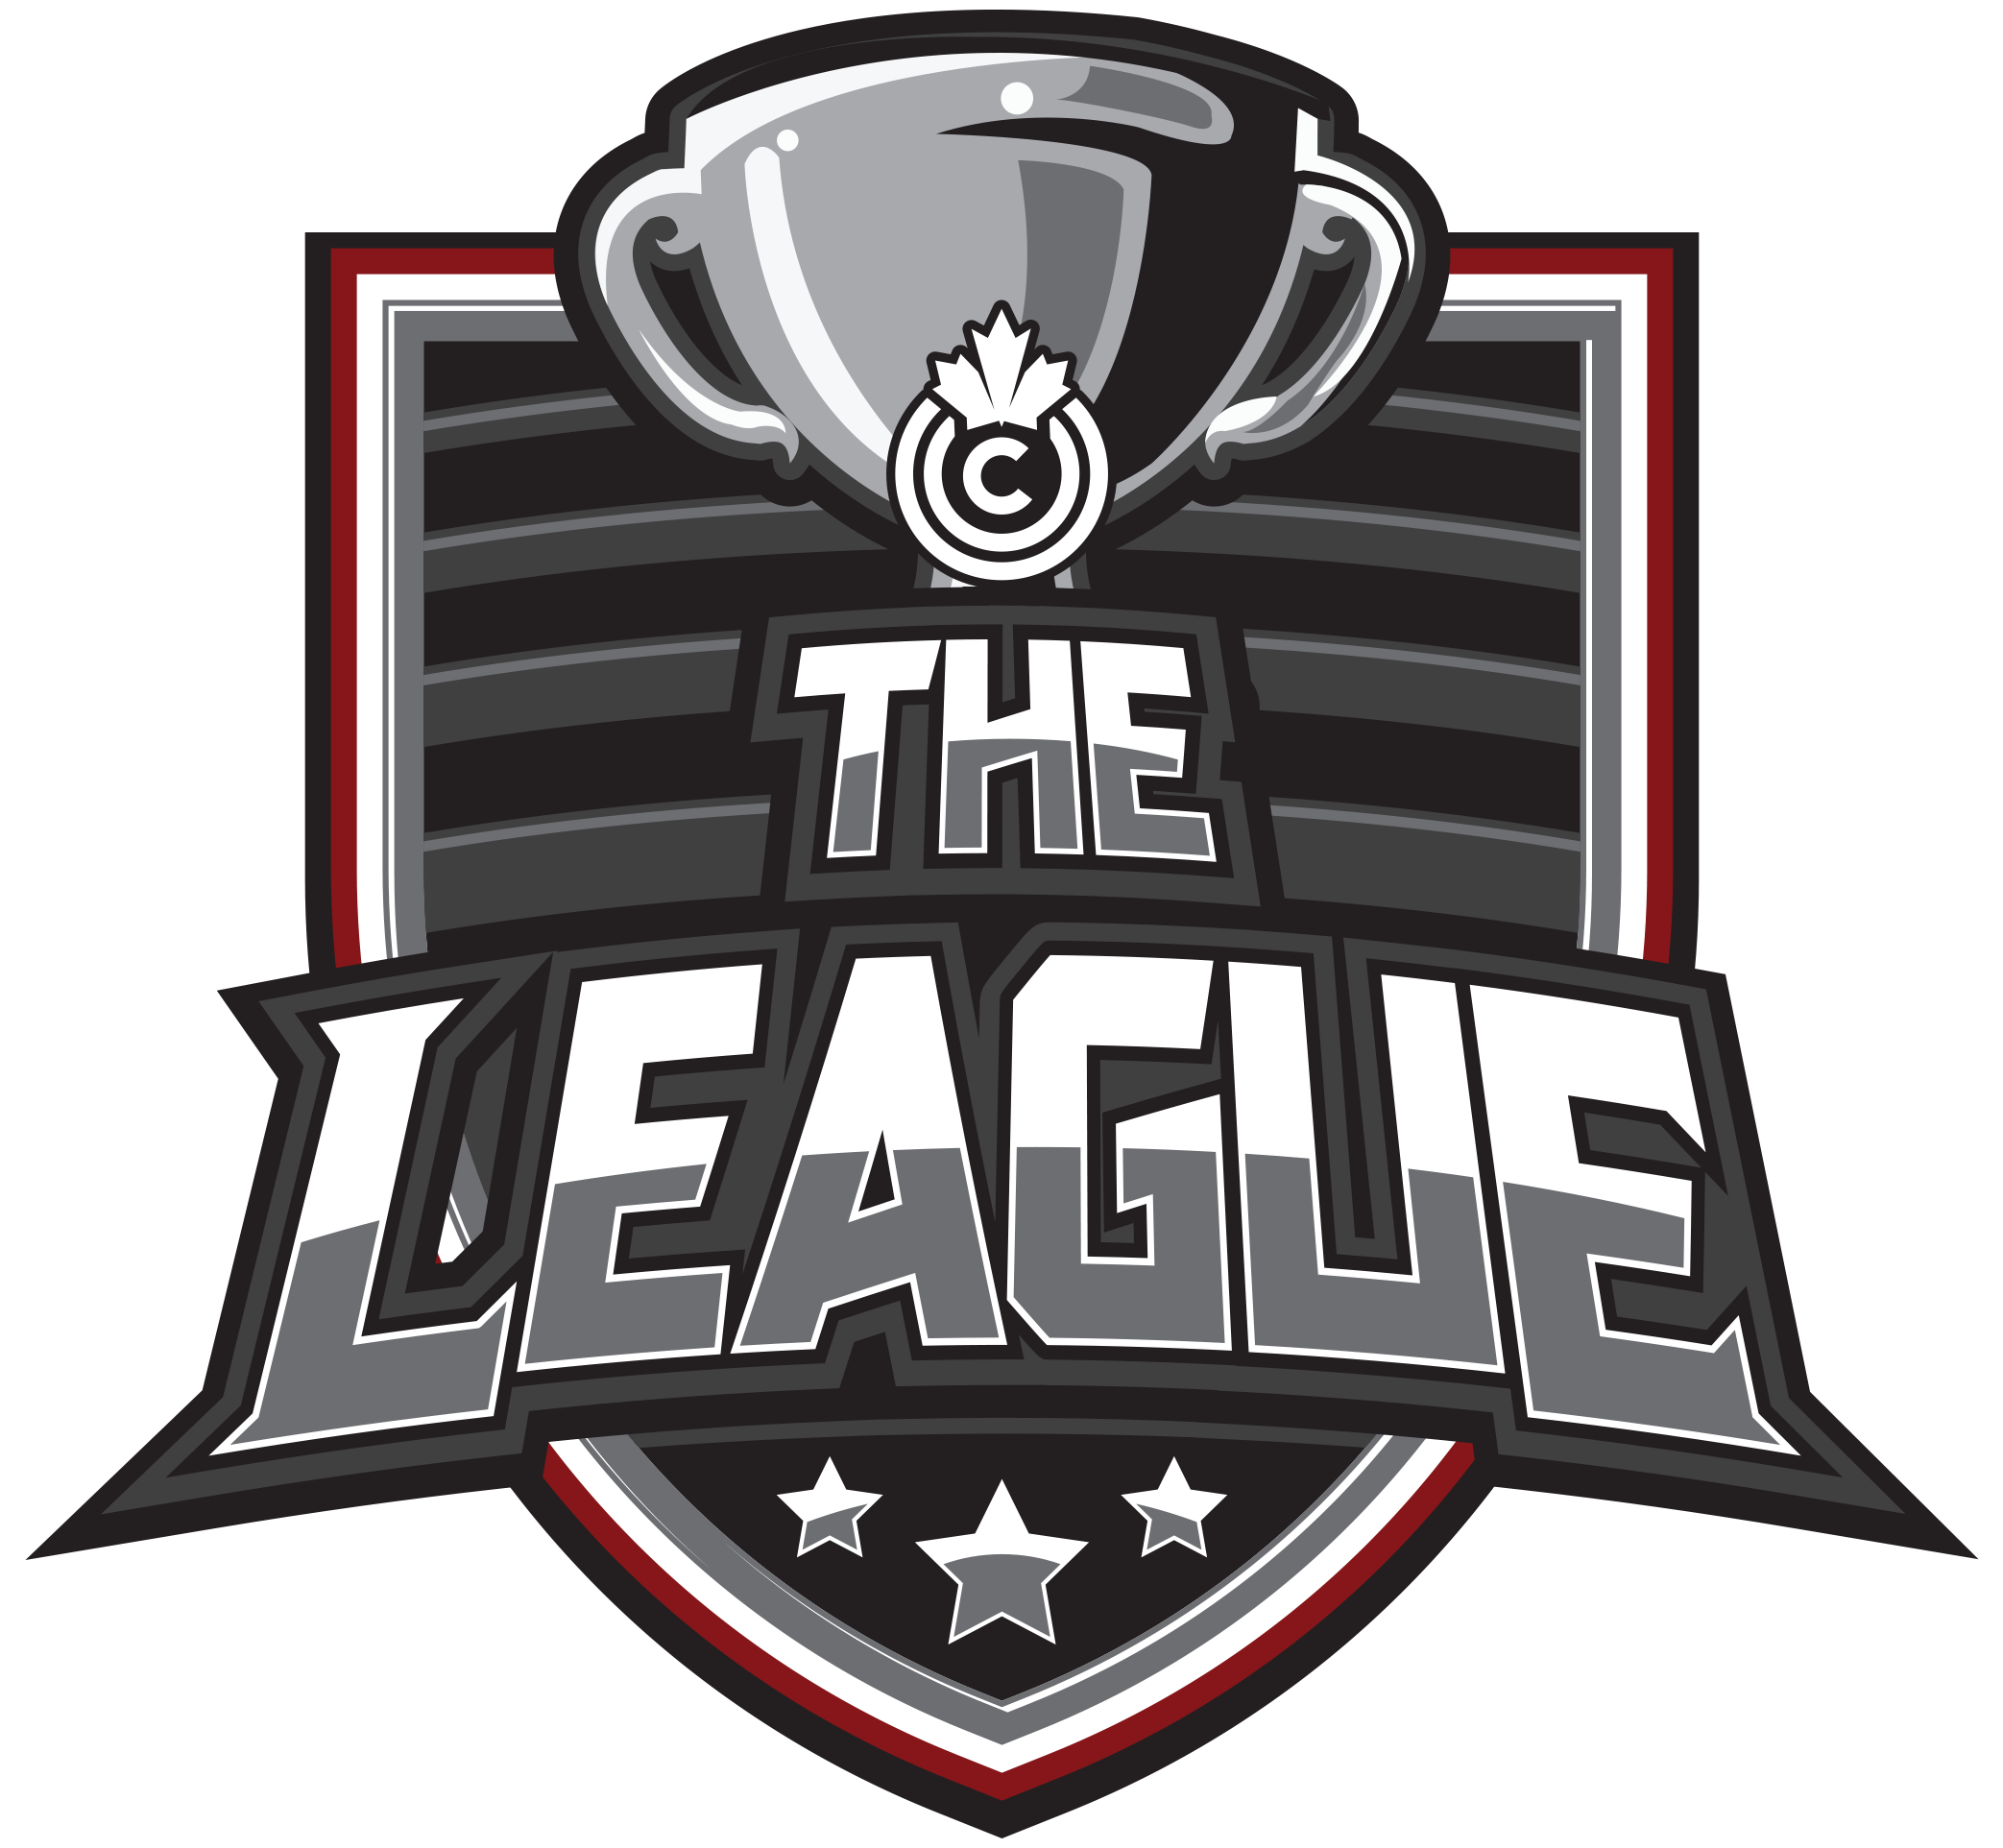 Canadian Cheer - The League